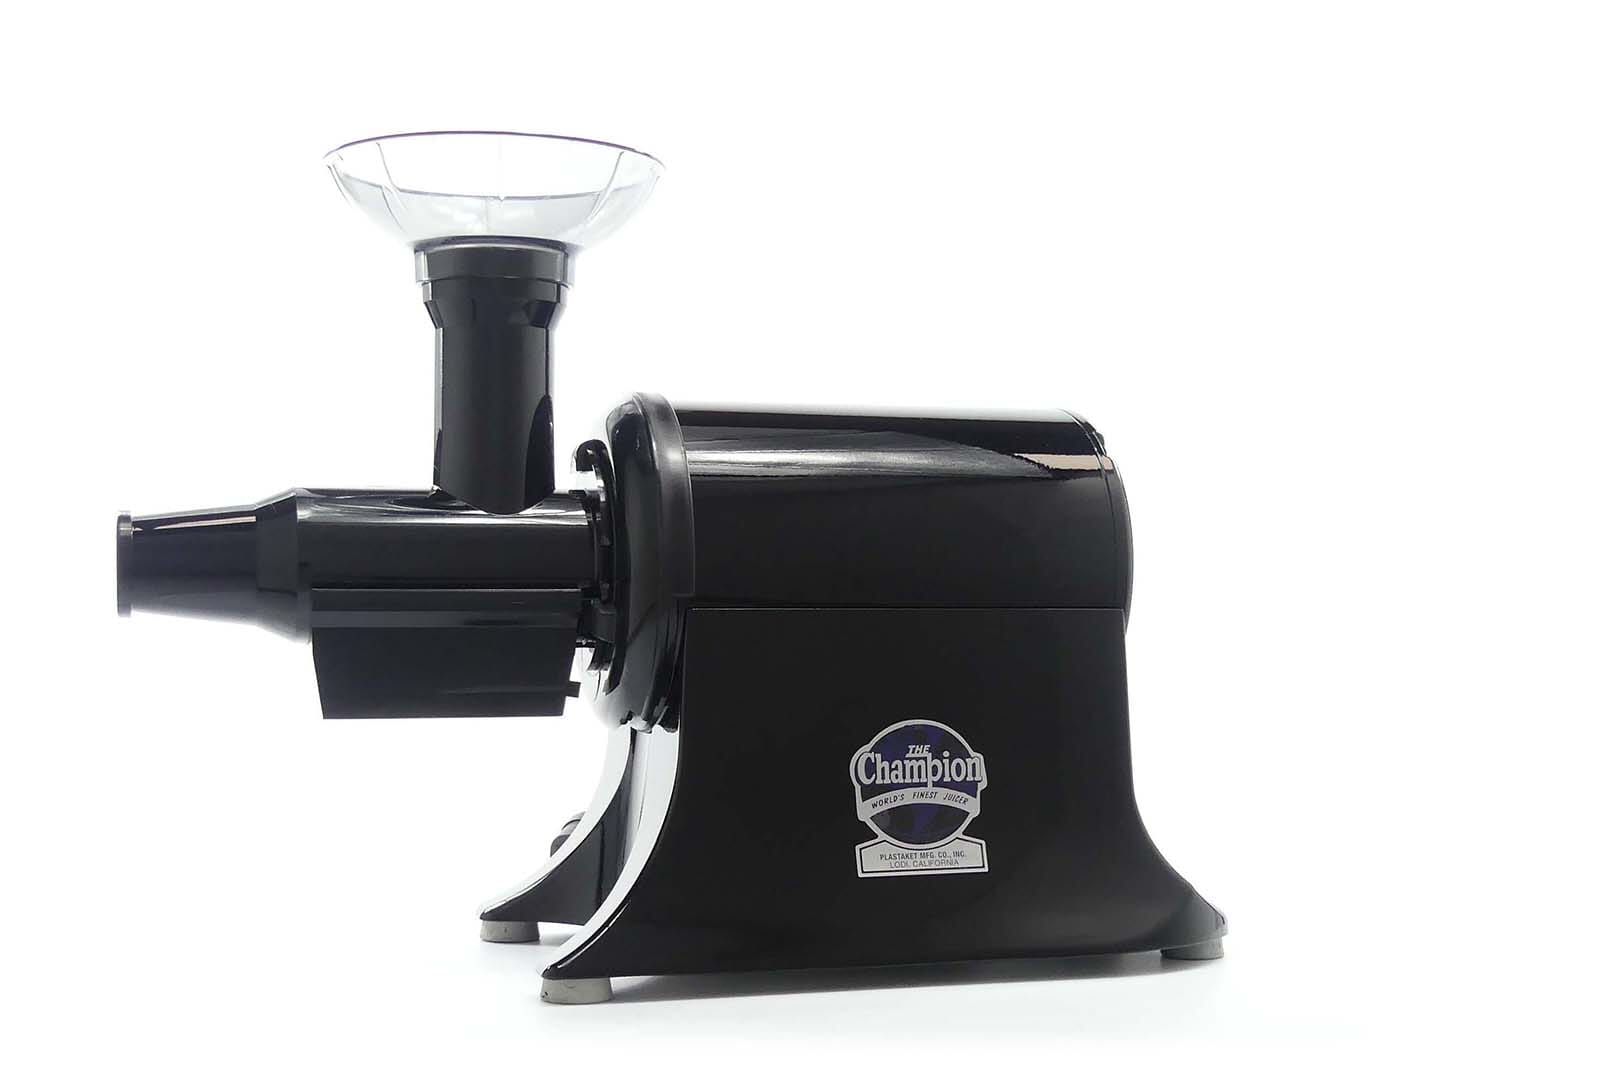 Champion 2000 Horizontal Juicer in